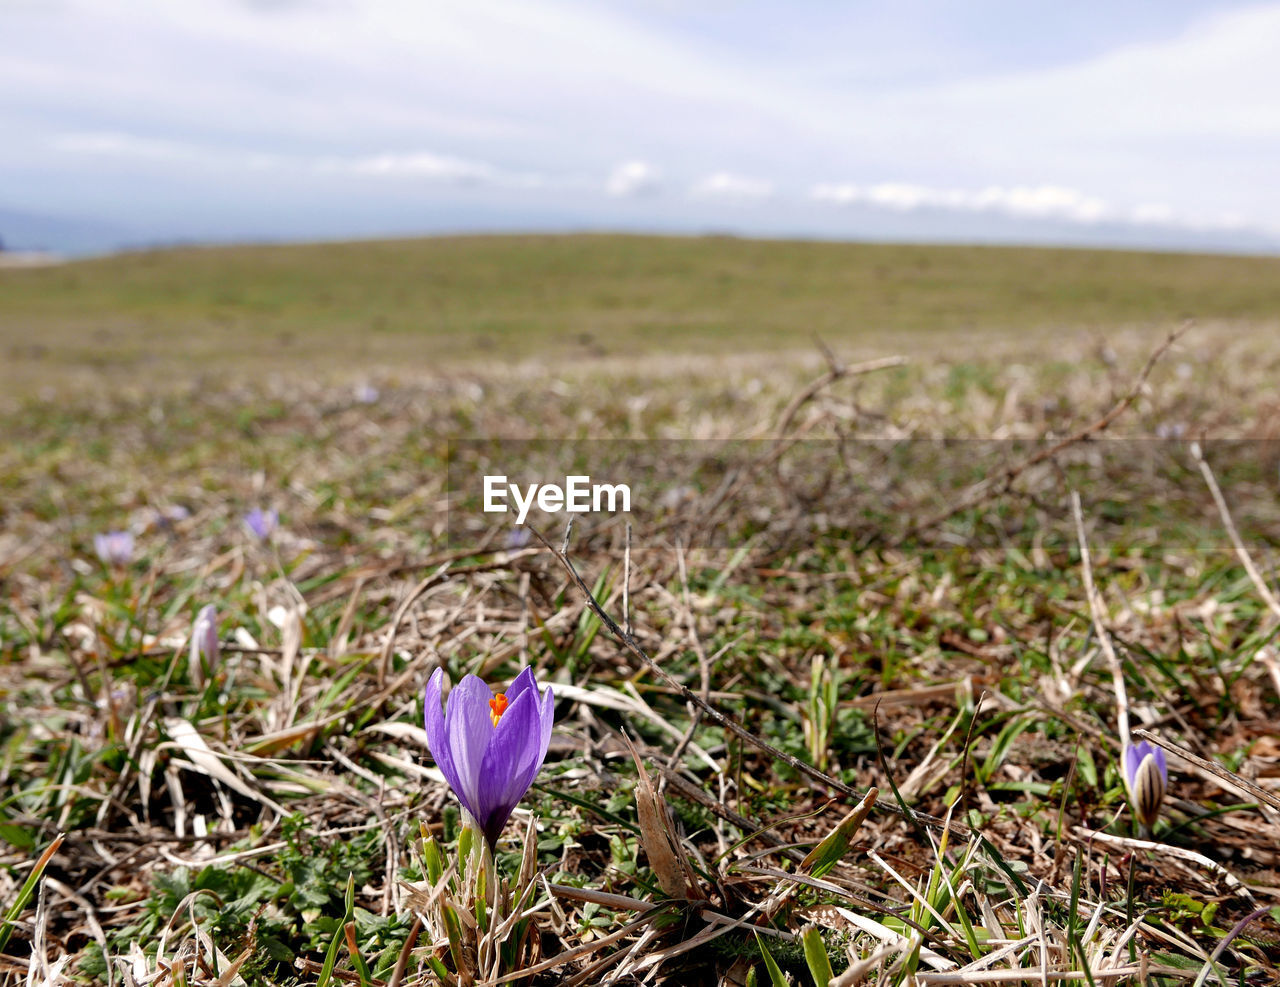 flower, flowering plant, plant, beauty in nature, vulnerability, growth, fragility, land, field, freshness, landscape, nature, purple, sky, day, environment, no people, cloud - sky, tranquility, focus on foreground, iris, crocus, outdoors, flower head